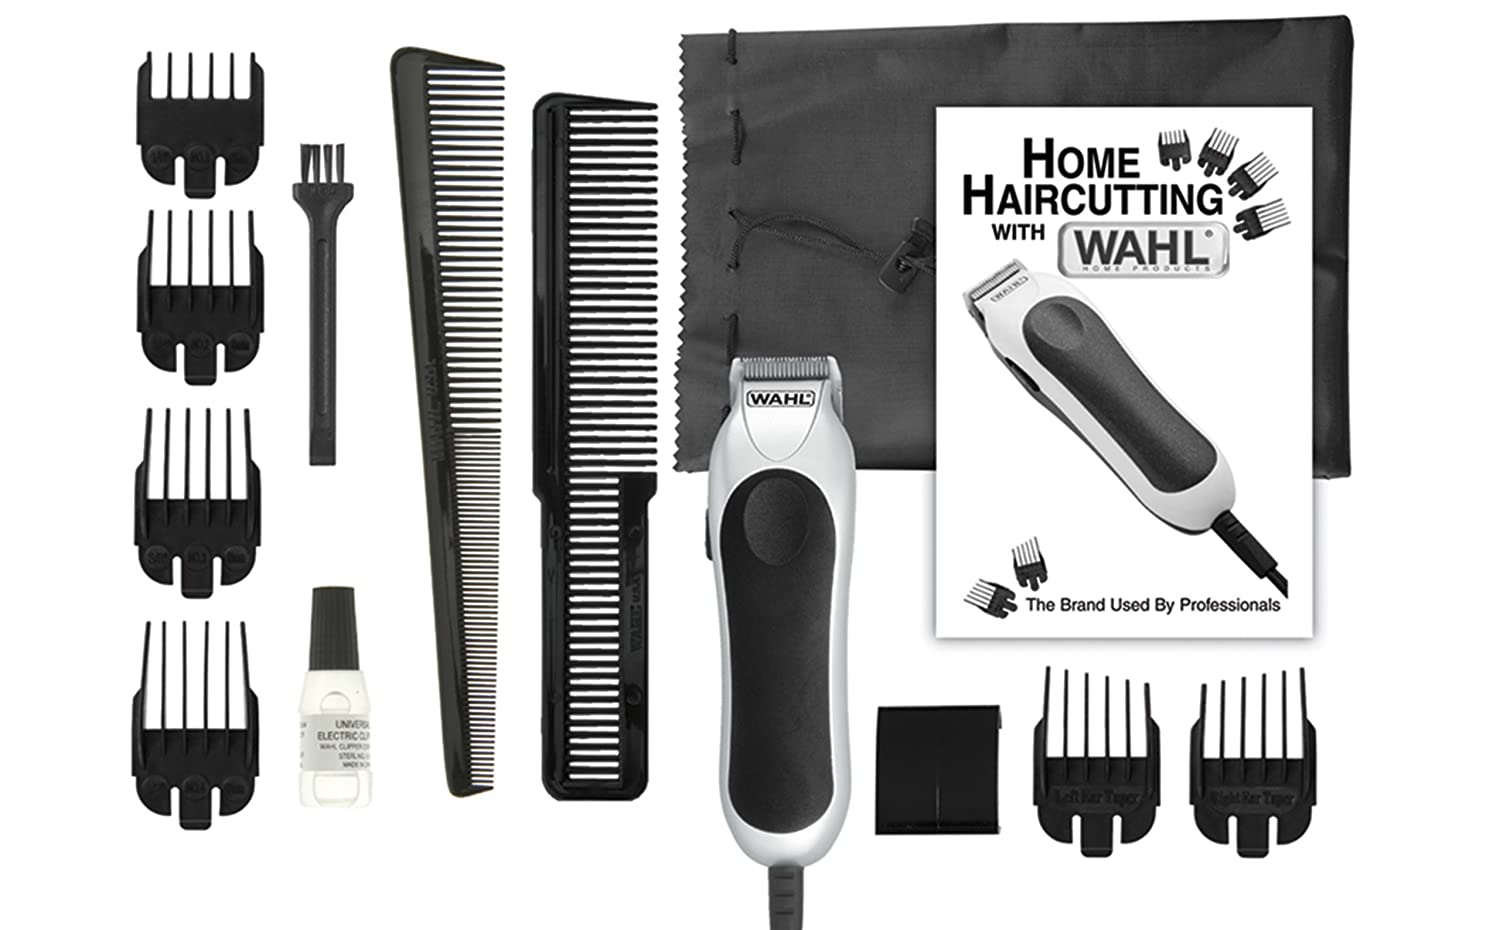 Wahl 9307-100 Mini Pro 13-Piece Compact Clipper Kit $9.97